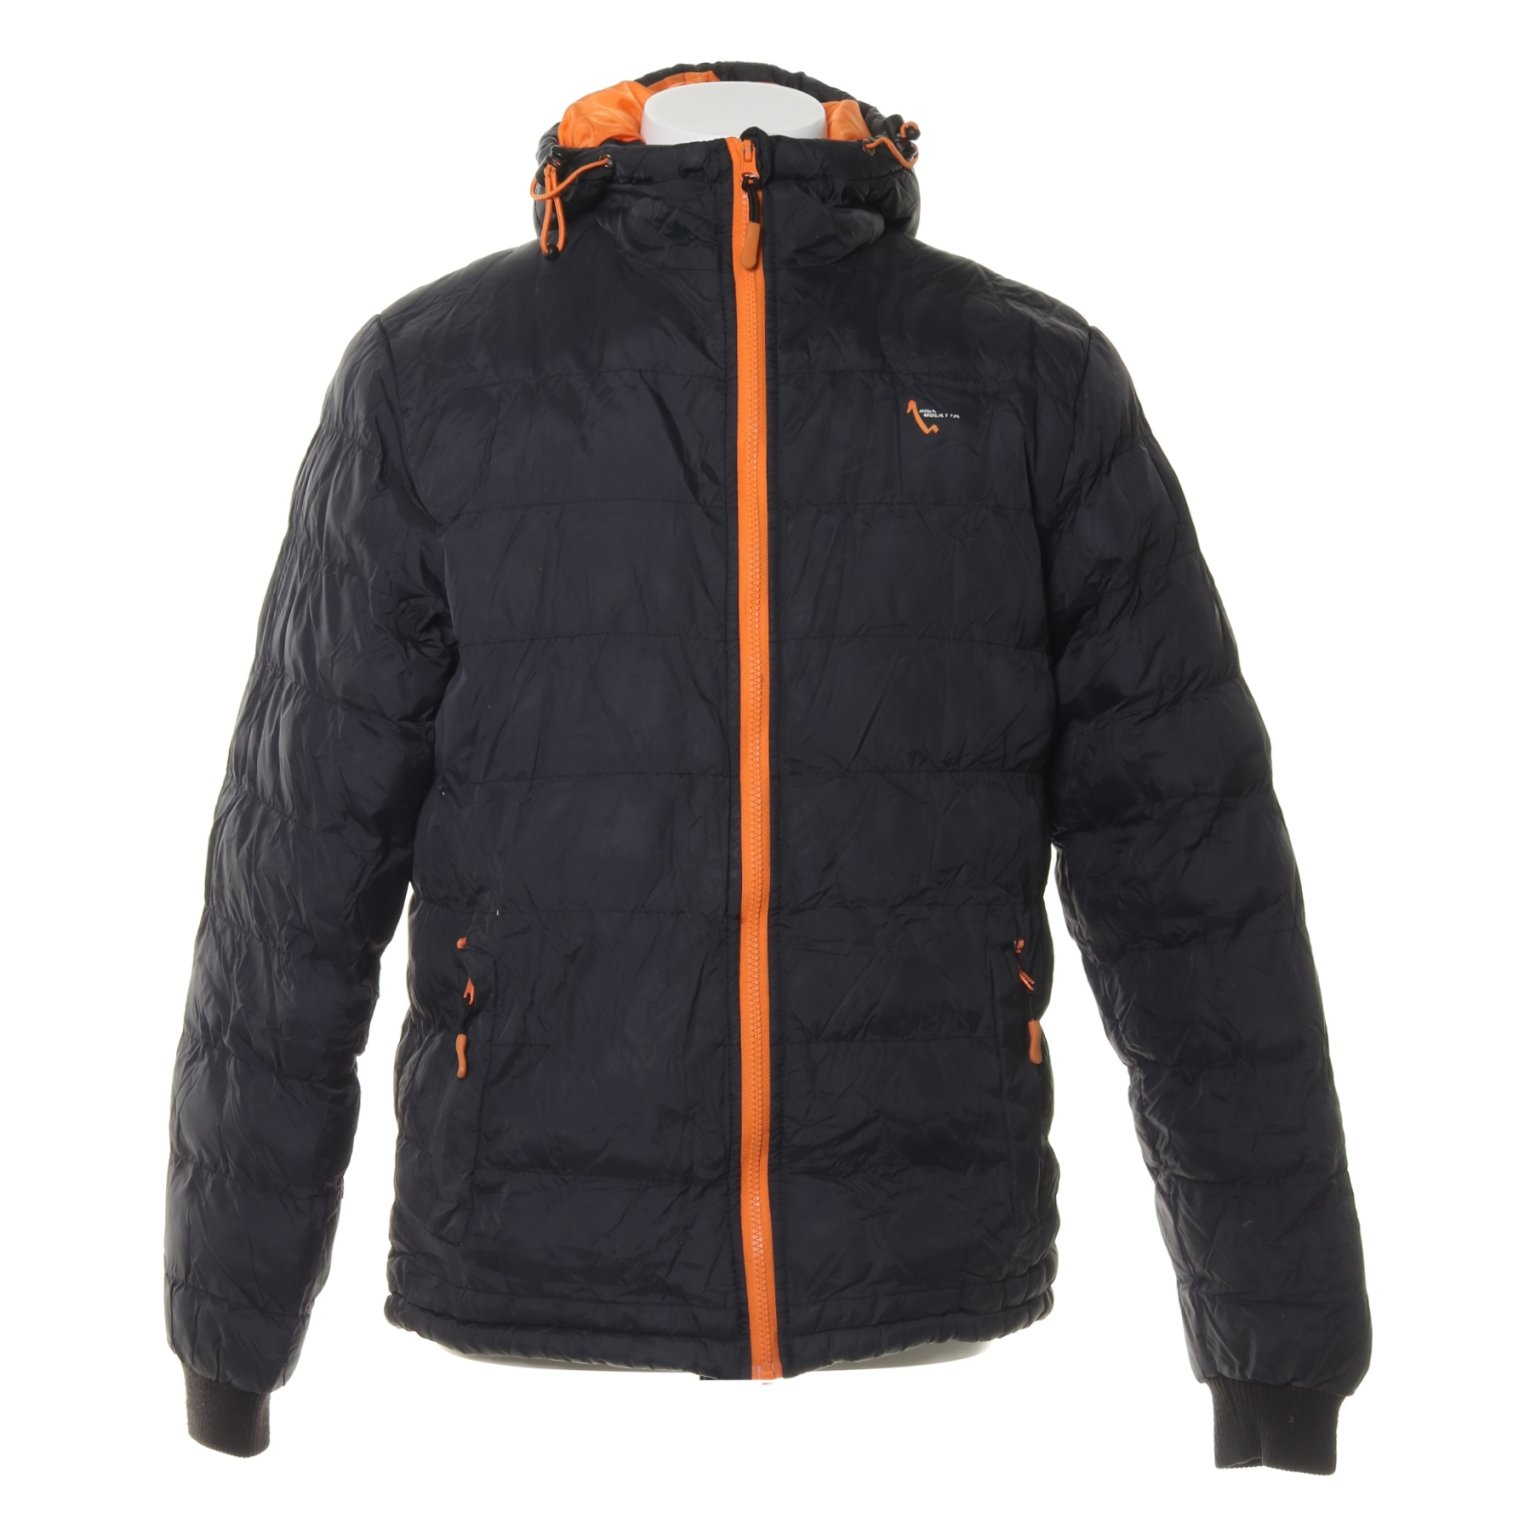 High Mountain, Vinterjacka, Strl: 48, Svart, Nylon/Polyester